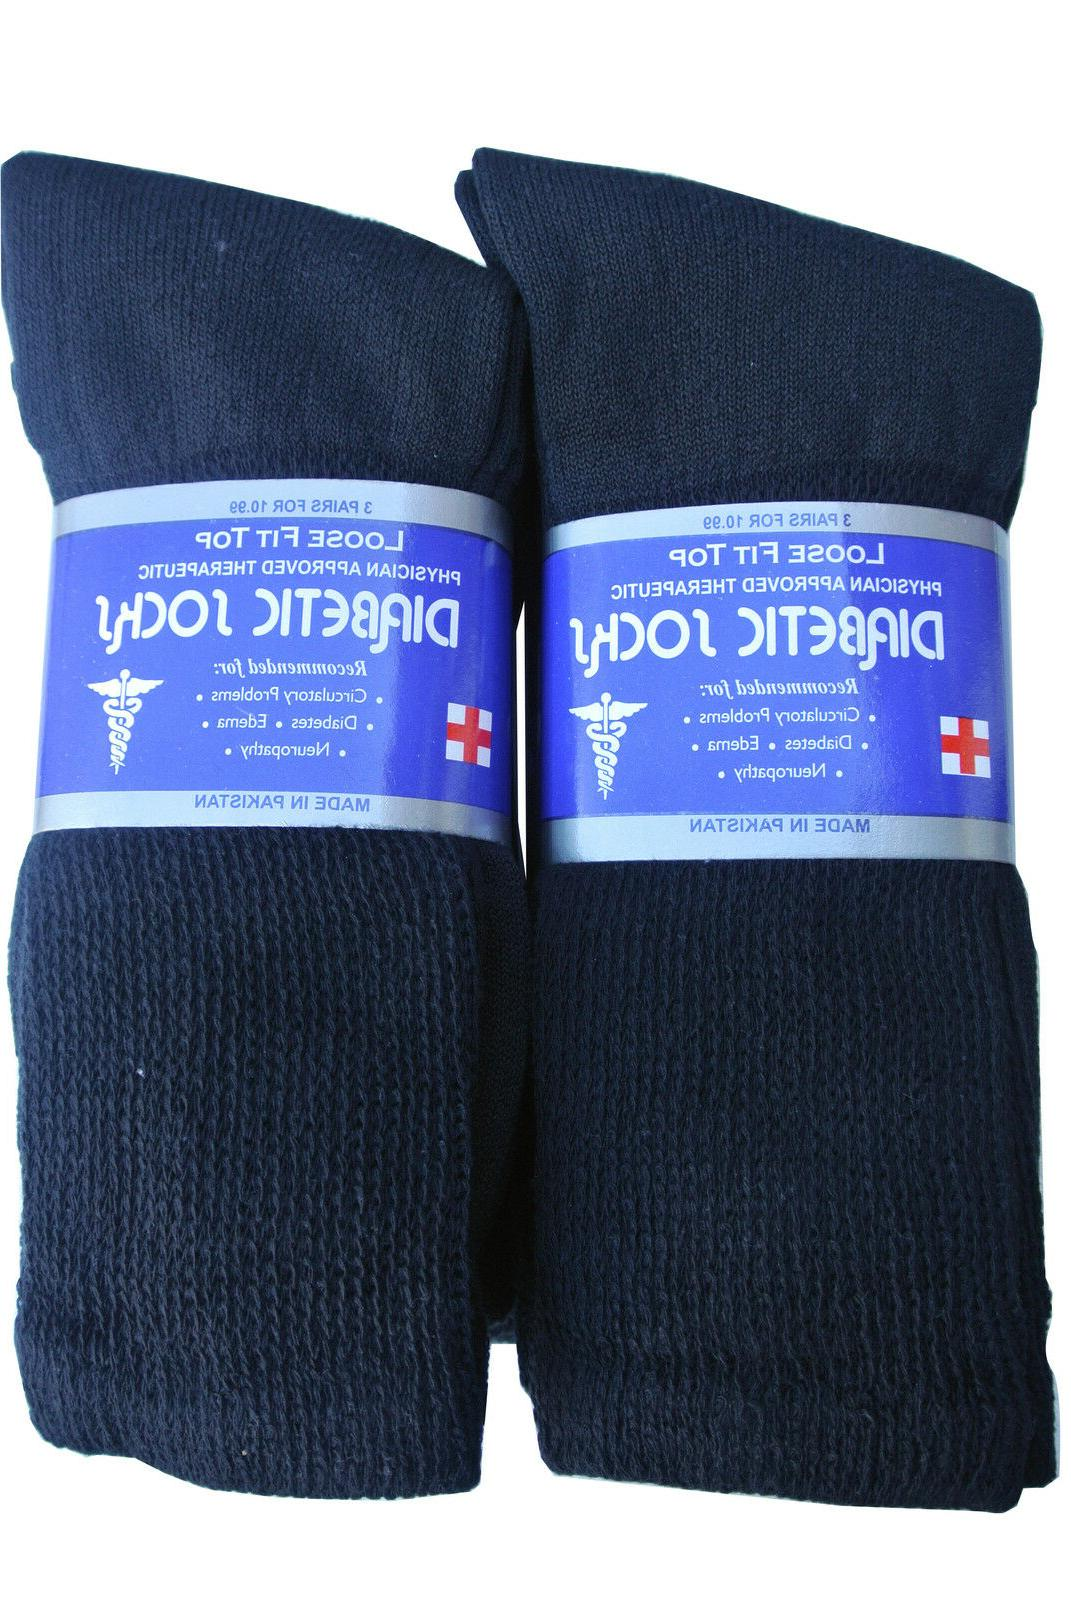 3, 6, Pairs circulatory Socks Health SHIPPING